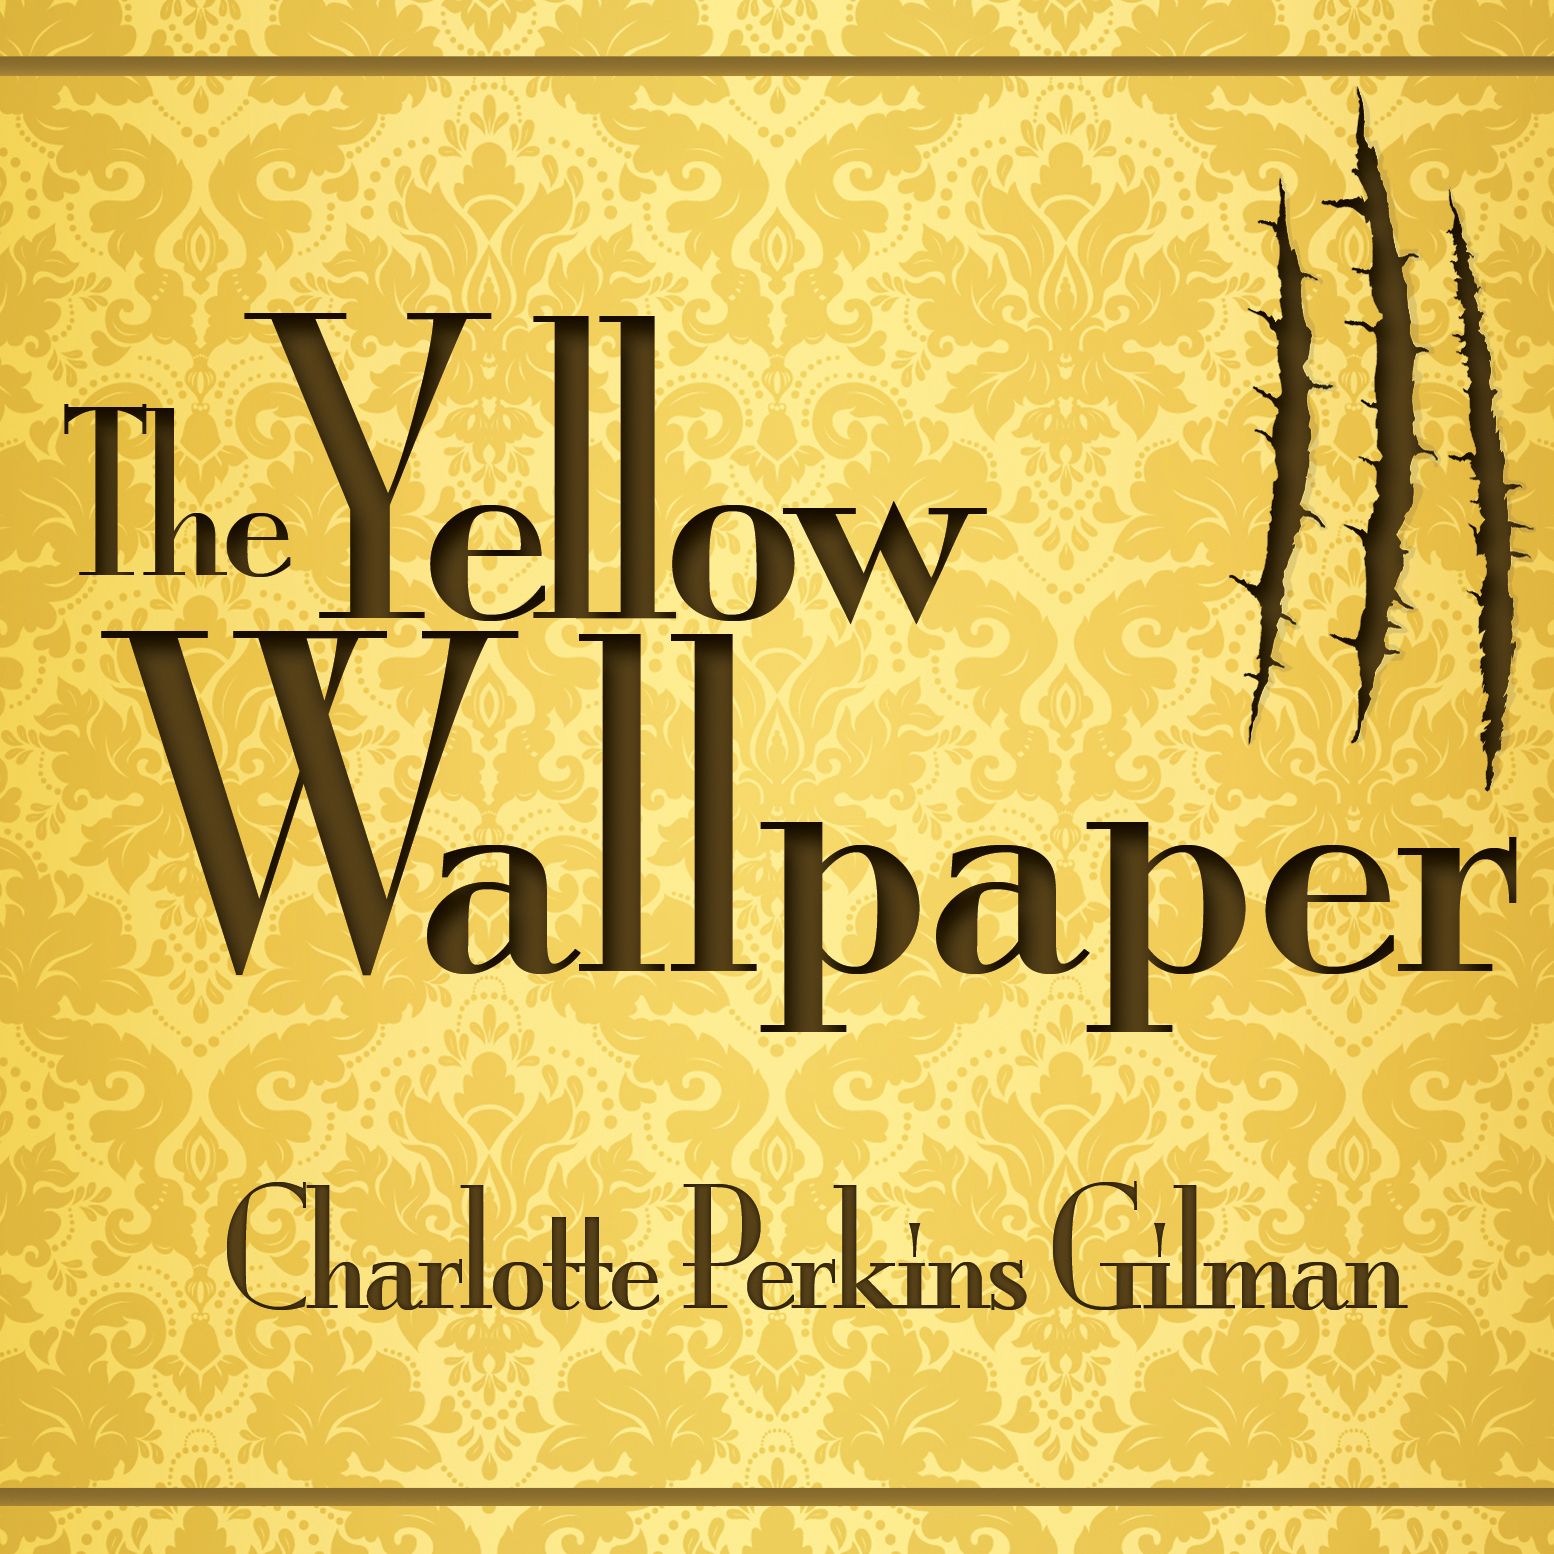 the yellow wallpaper audiobook  The Yellow Wallpaper - Audiobook by Charlotte Perkins Gilman